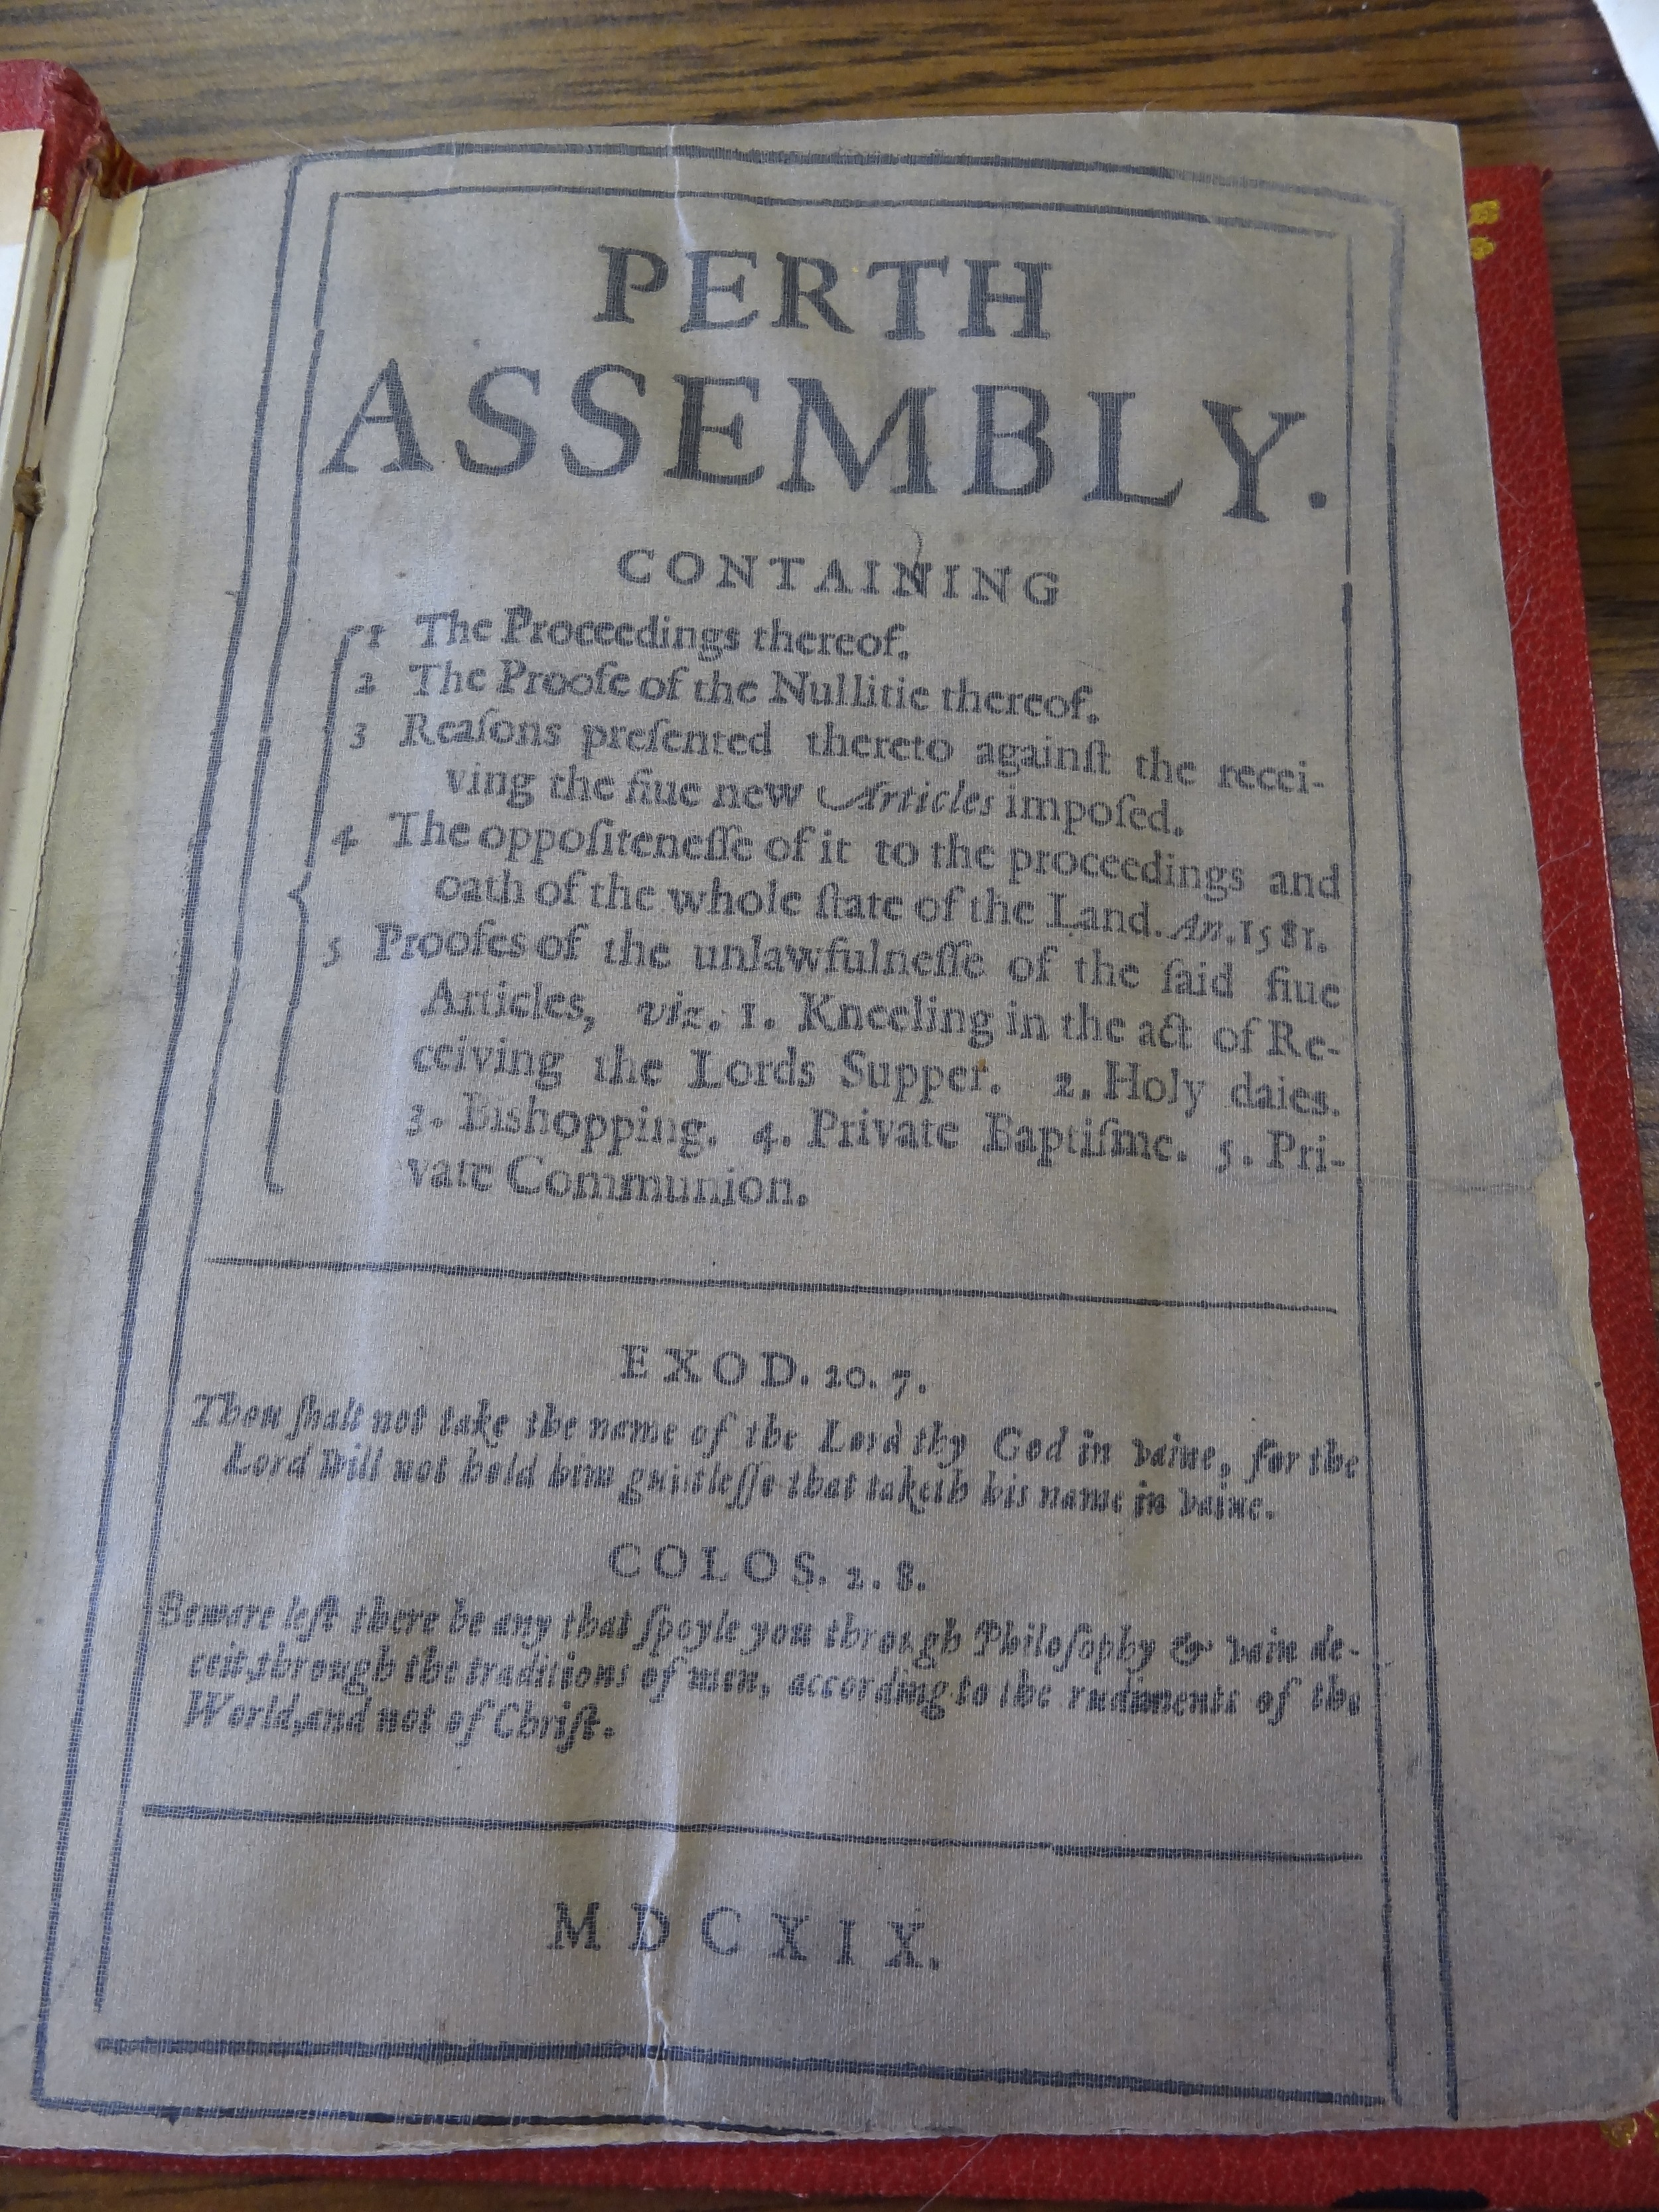 Perth Assemby , the book William Brewster secretly published and distributed in England in 1619 that made King James extremely angry and resulted in the eventual confiscation of his printing press, the arrest of Thomas Brewer by University of Leiden authorities, and forced Brewster into hiding.